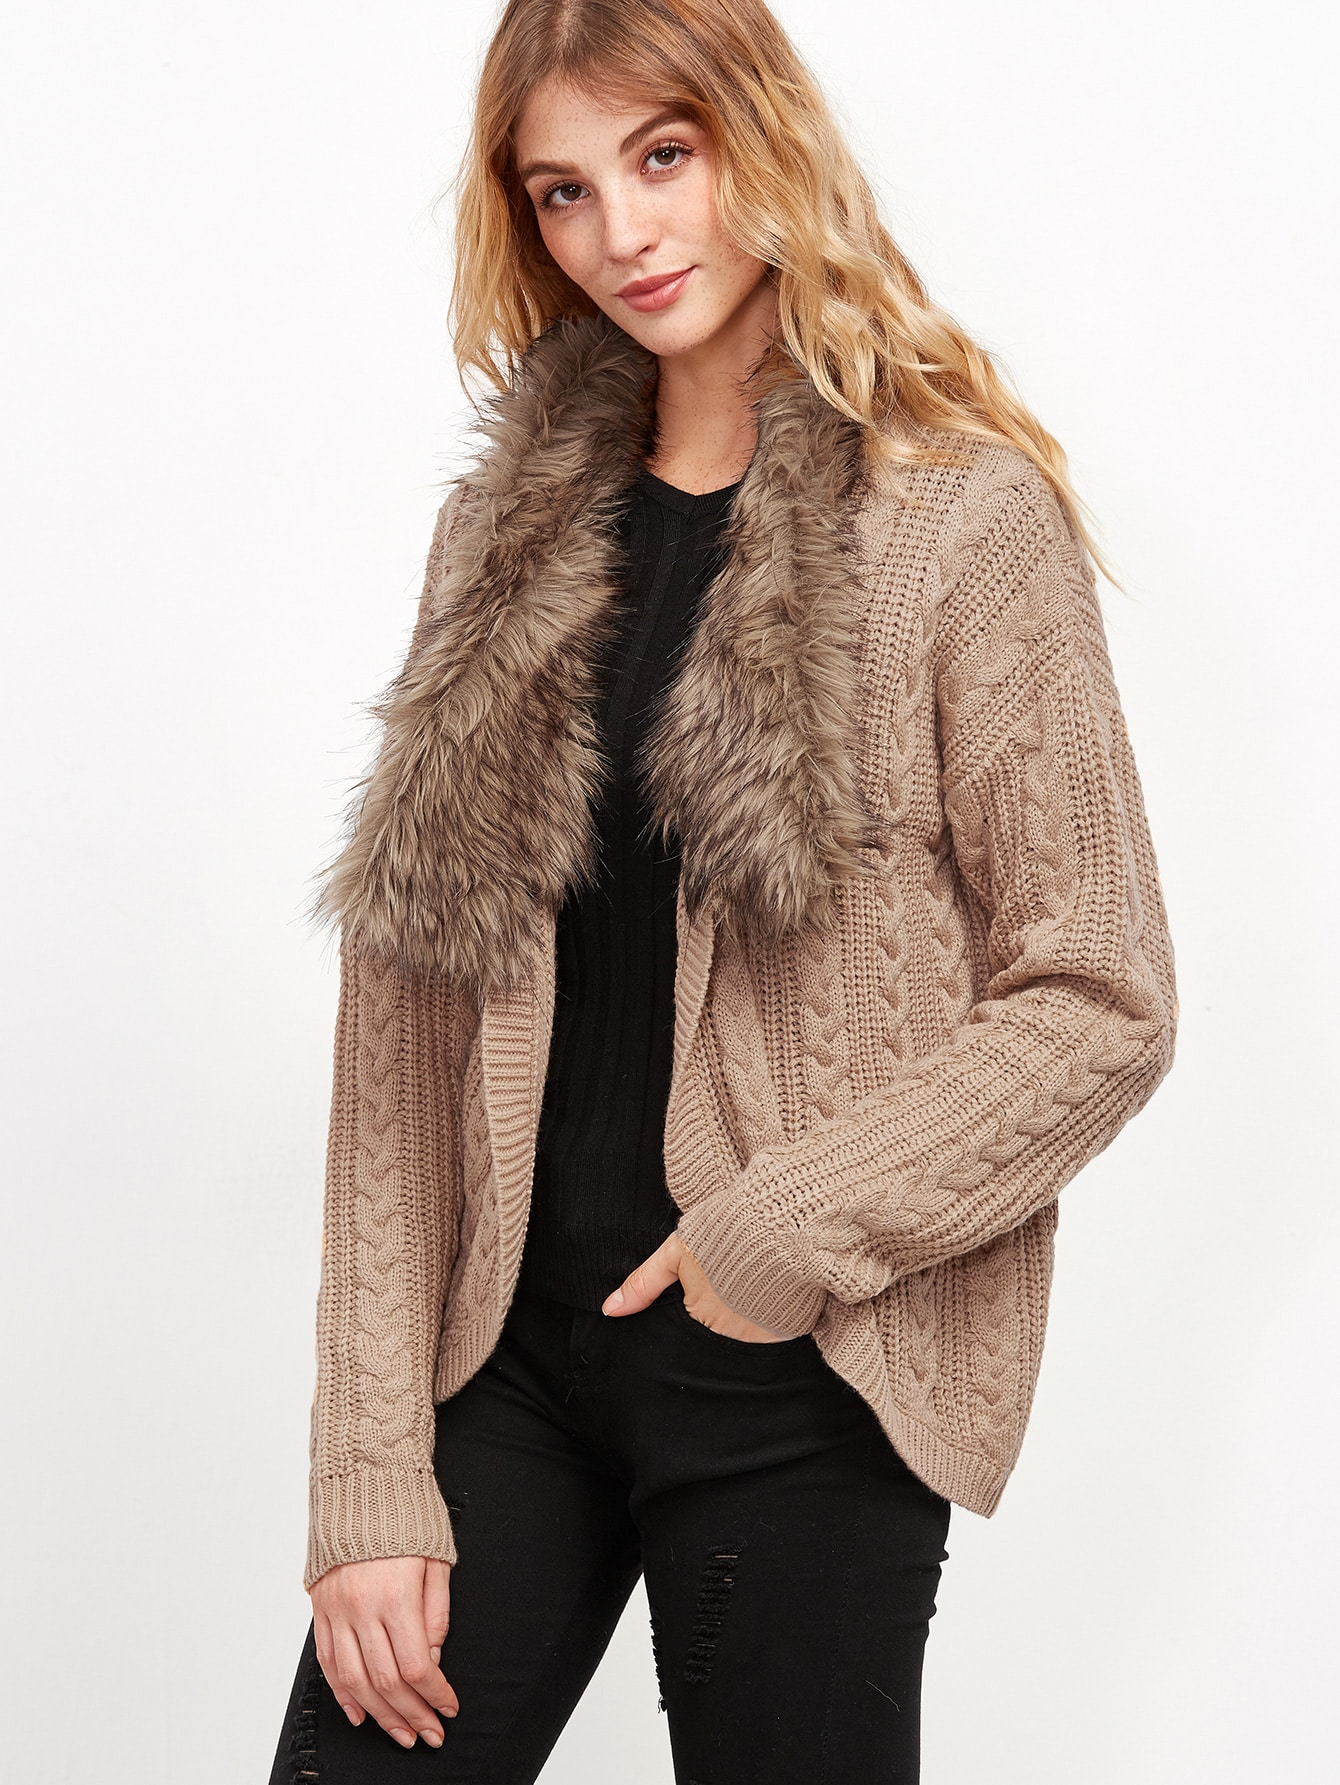 Shop eBay for great deals on Fur Cardigan Sweaters for Women. You'll find new or used products in Fur Cardigan Sweaters for Women on eBay. Free shipping on selected items.